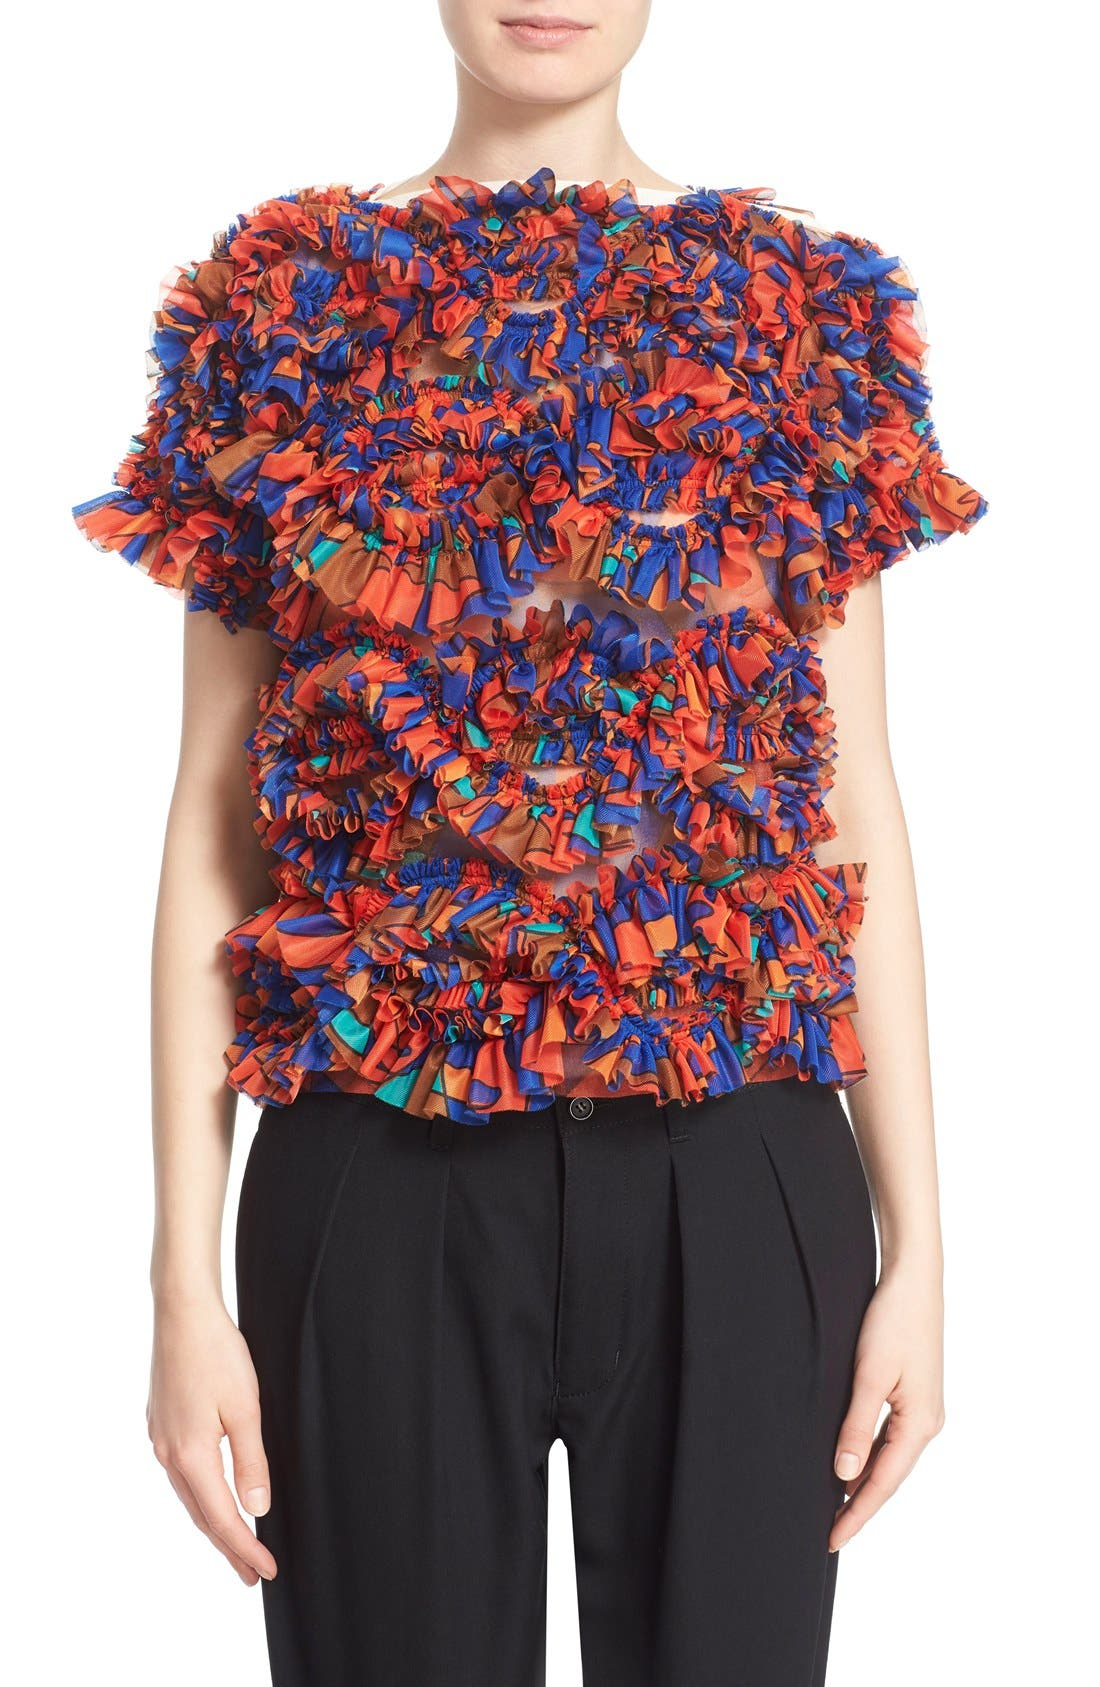 Alternate Image 1 Selected - Tricot Comme des Garçons Print Ruffle Top